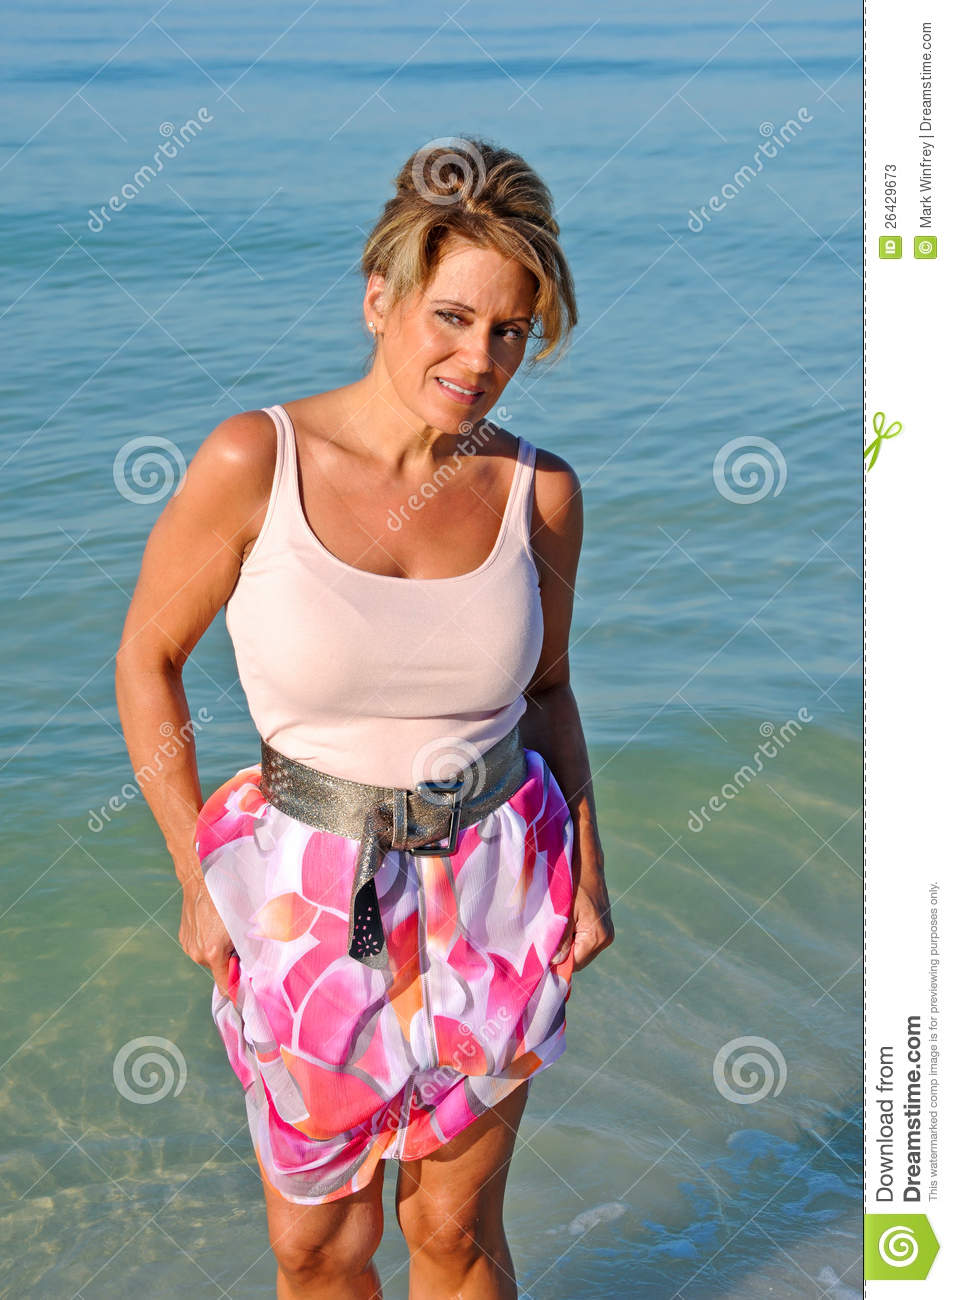 Attractive Woman Walking On The Beach Stock Image - Image ...